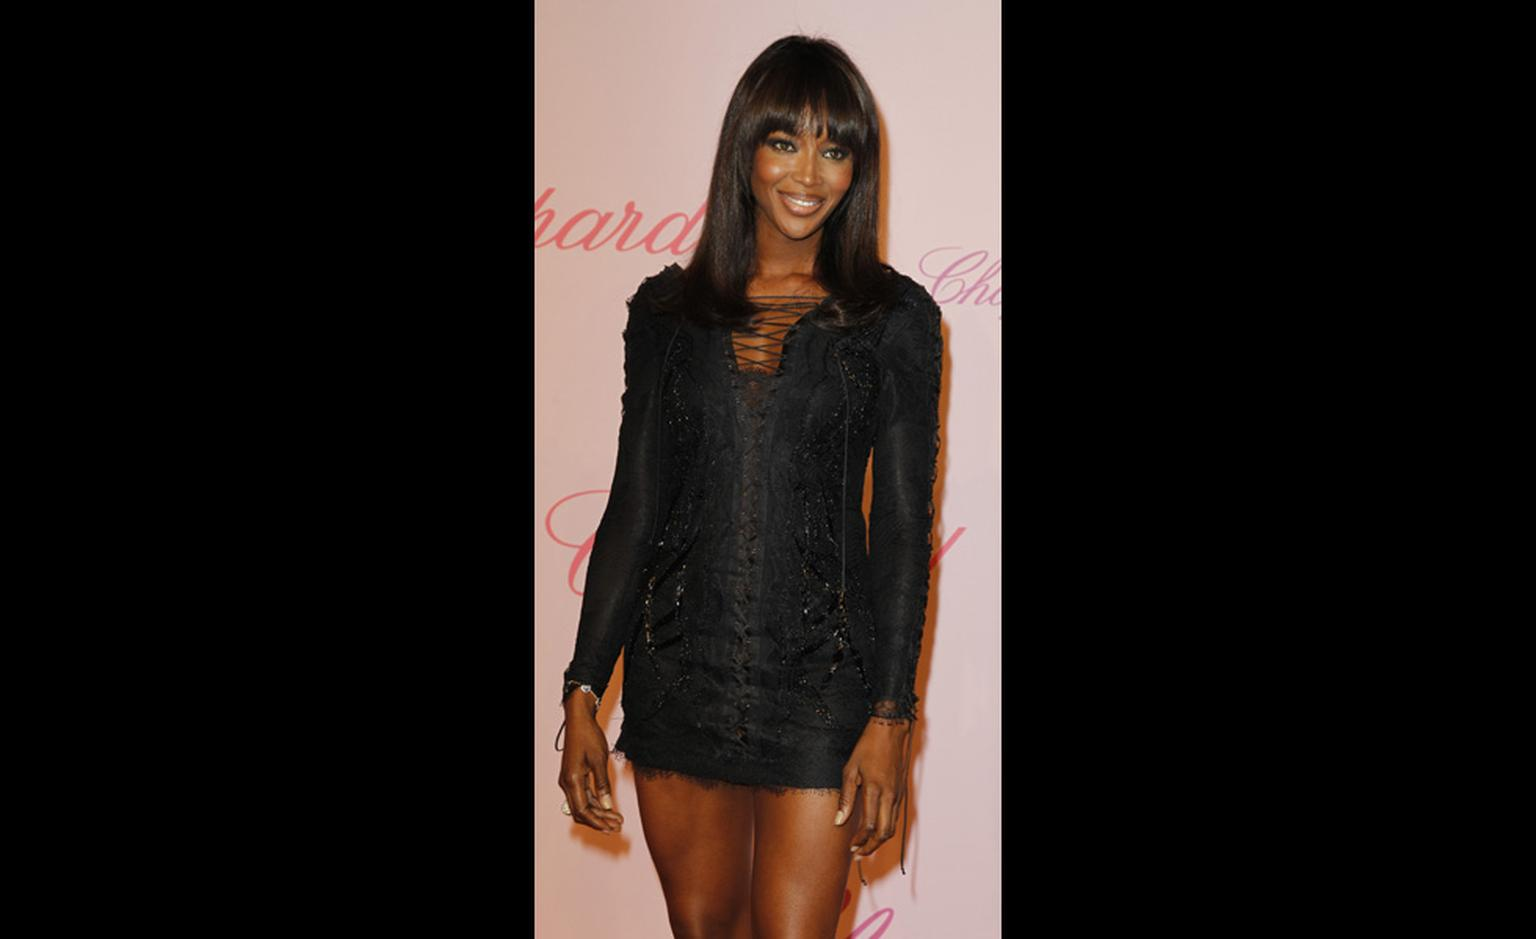 Naomi Campbell at Chopard's Crazy Diamonds party at the Cannes Film Festival 2011